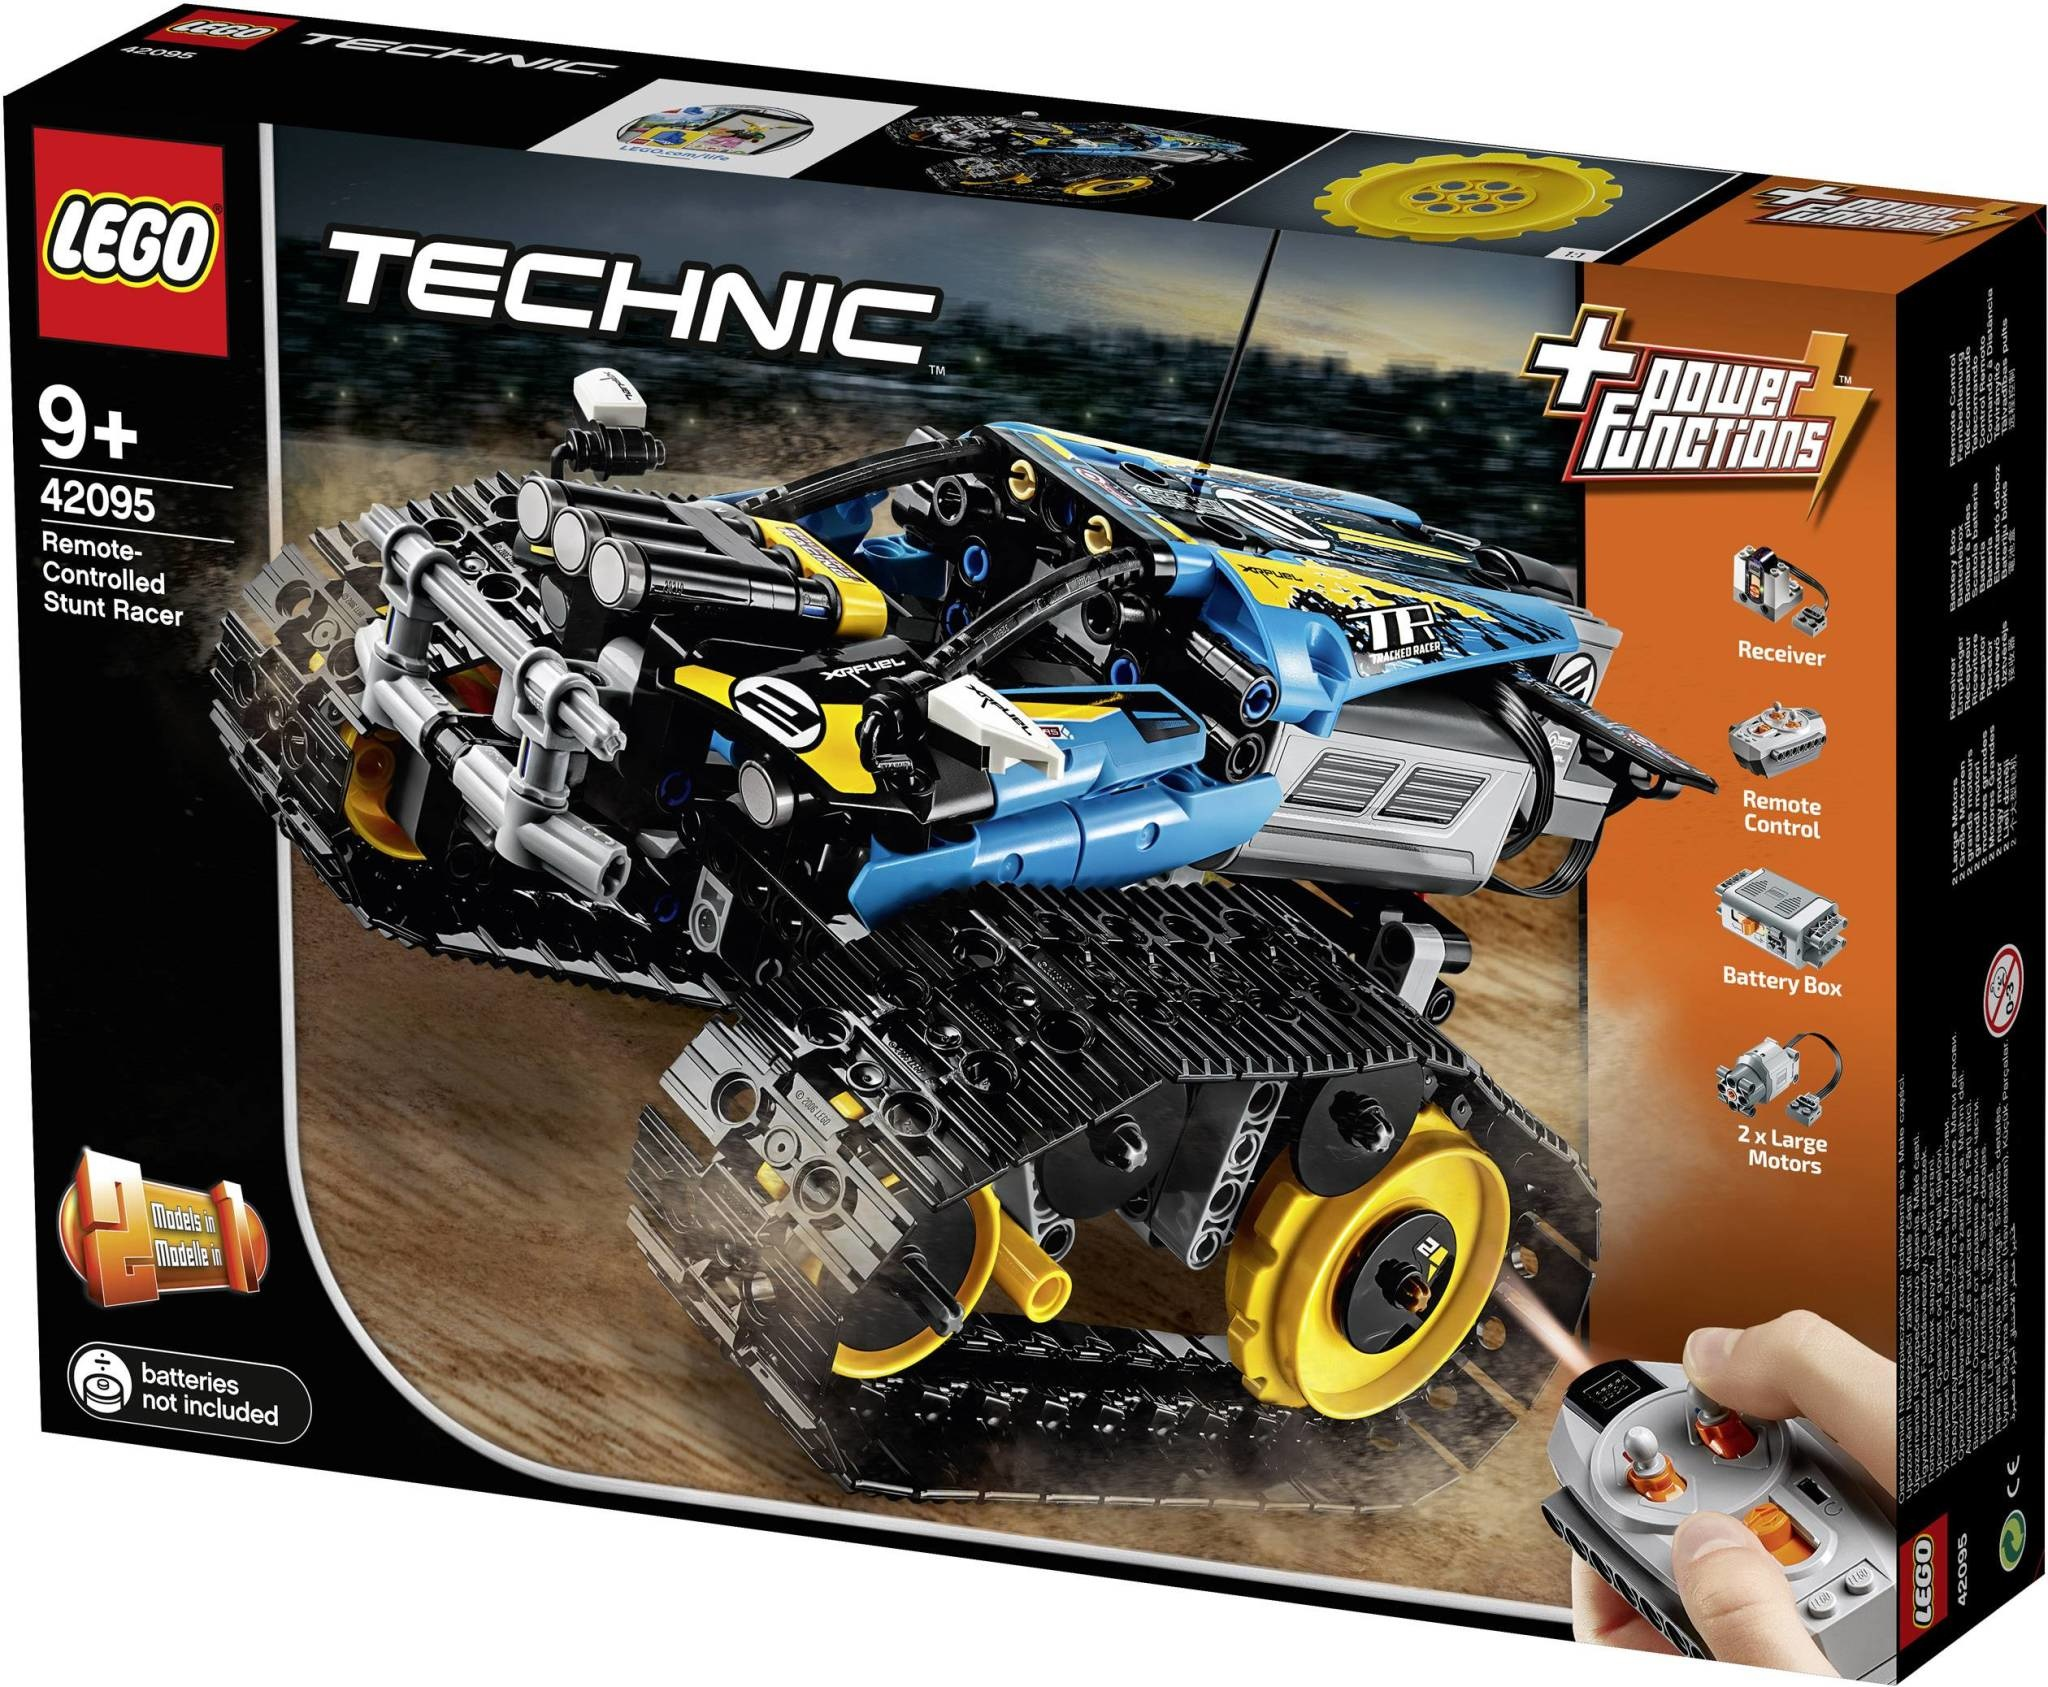 LEGO Technic Remote-Controlled Stunt Racer-1